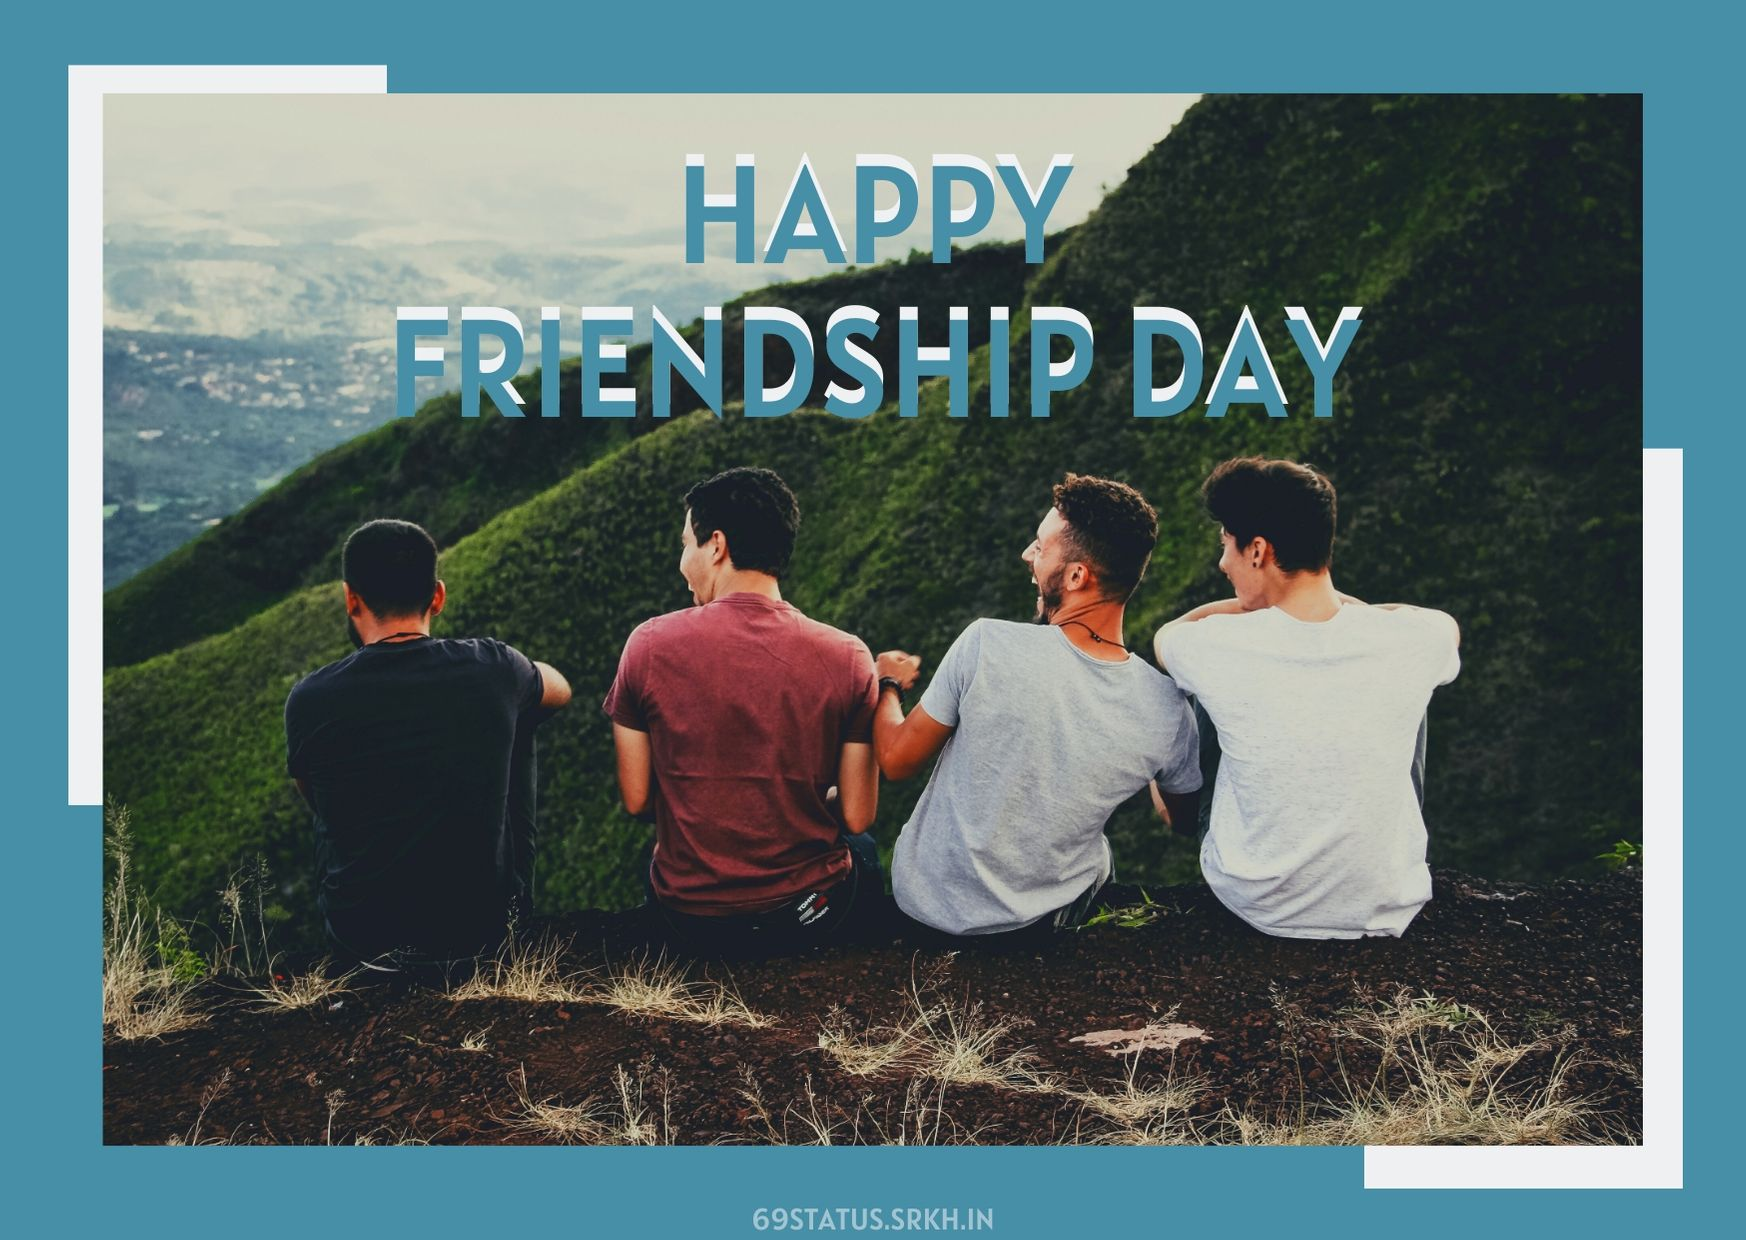 Happy Friendship Day Image full HD free download.